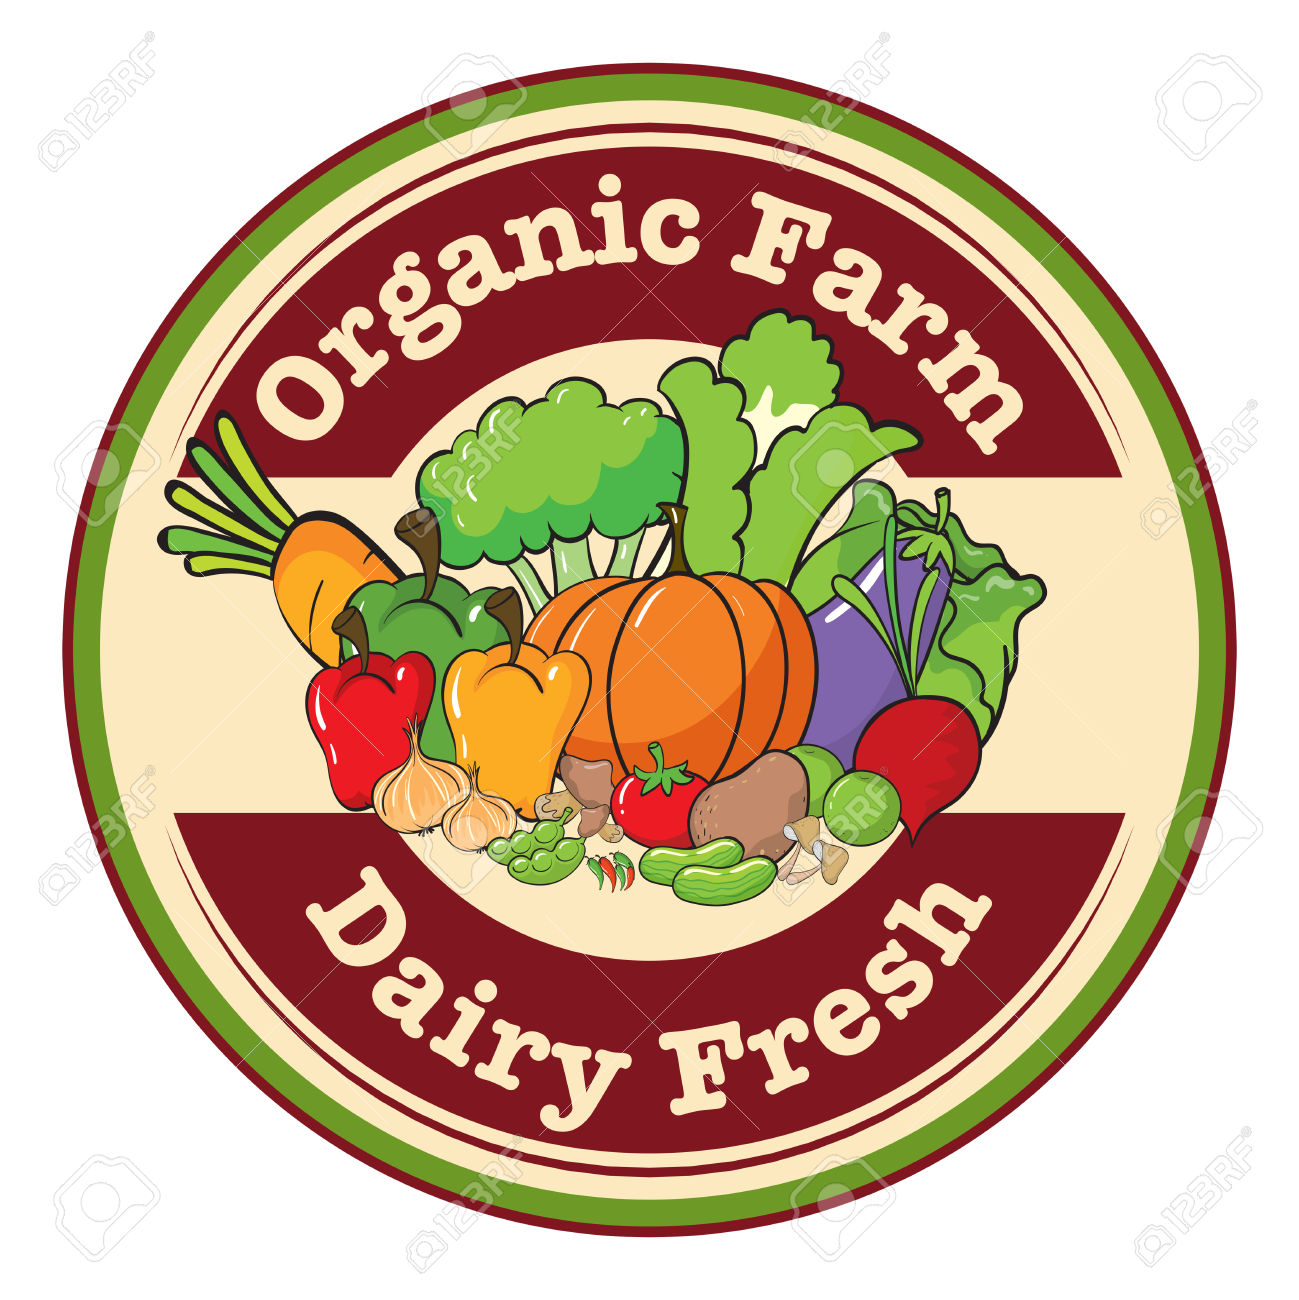 Illustration Of A Round Template With An Organic Farm And Dairy.